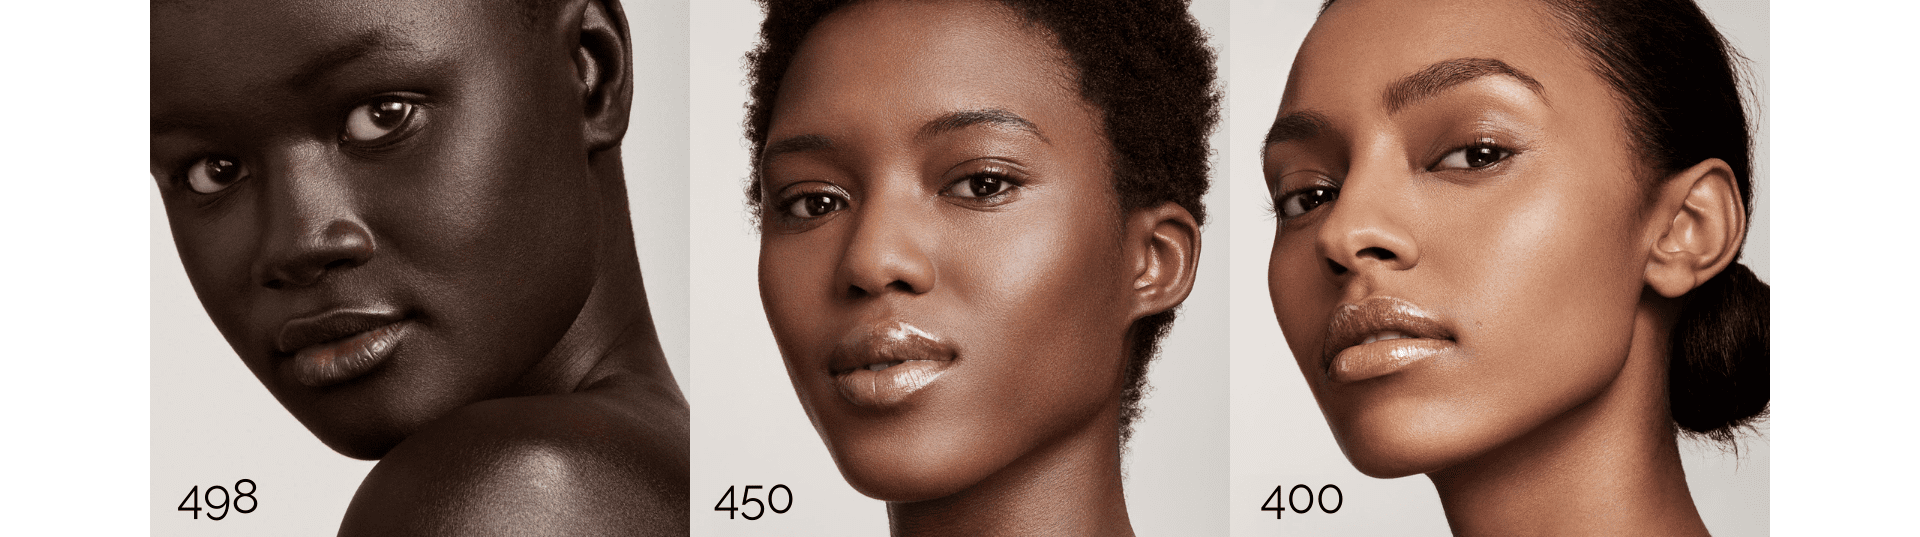 Colourism in the Crop